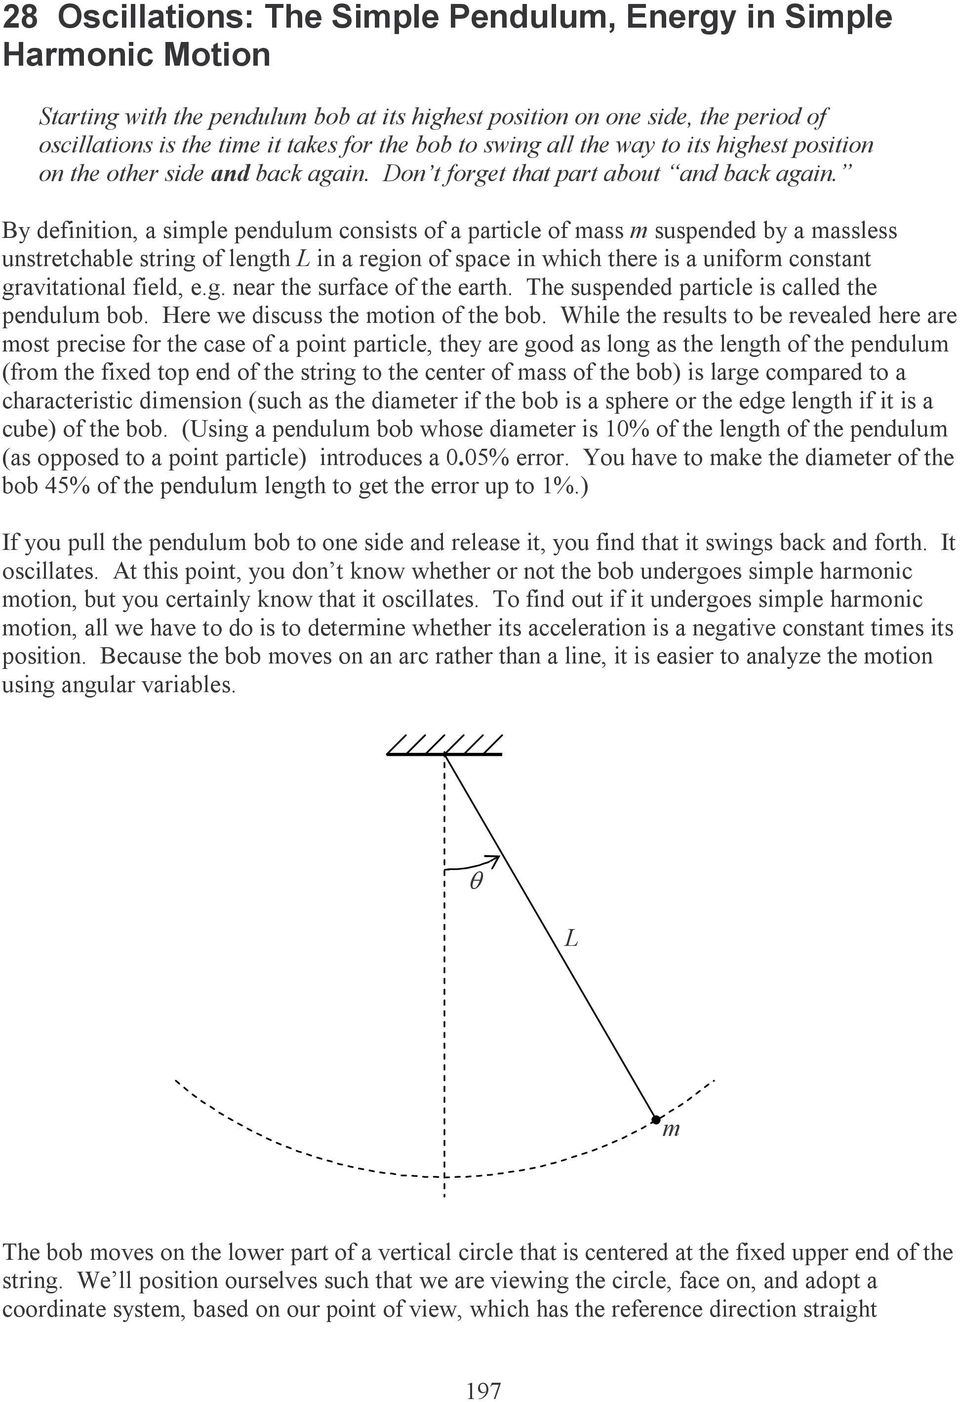 28 Oscillations: The Simple Pendulum, Energy in Simple